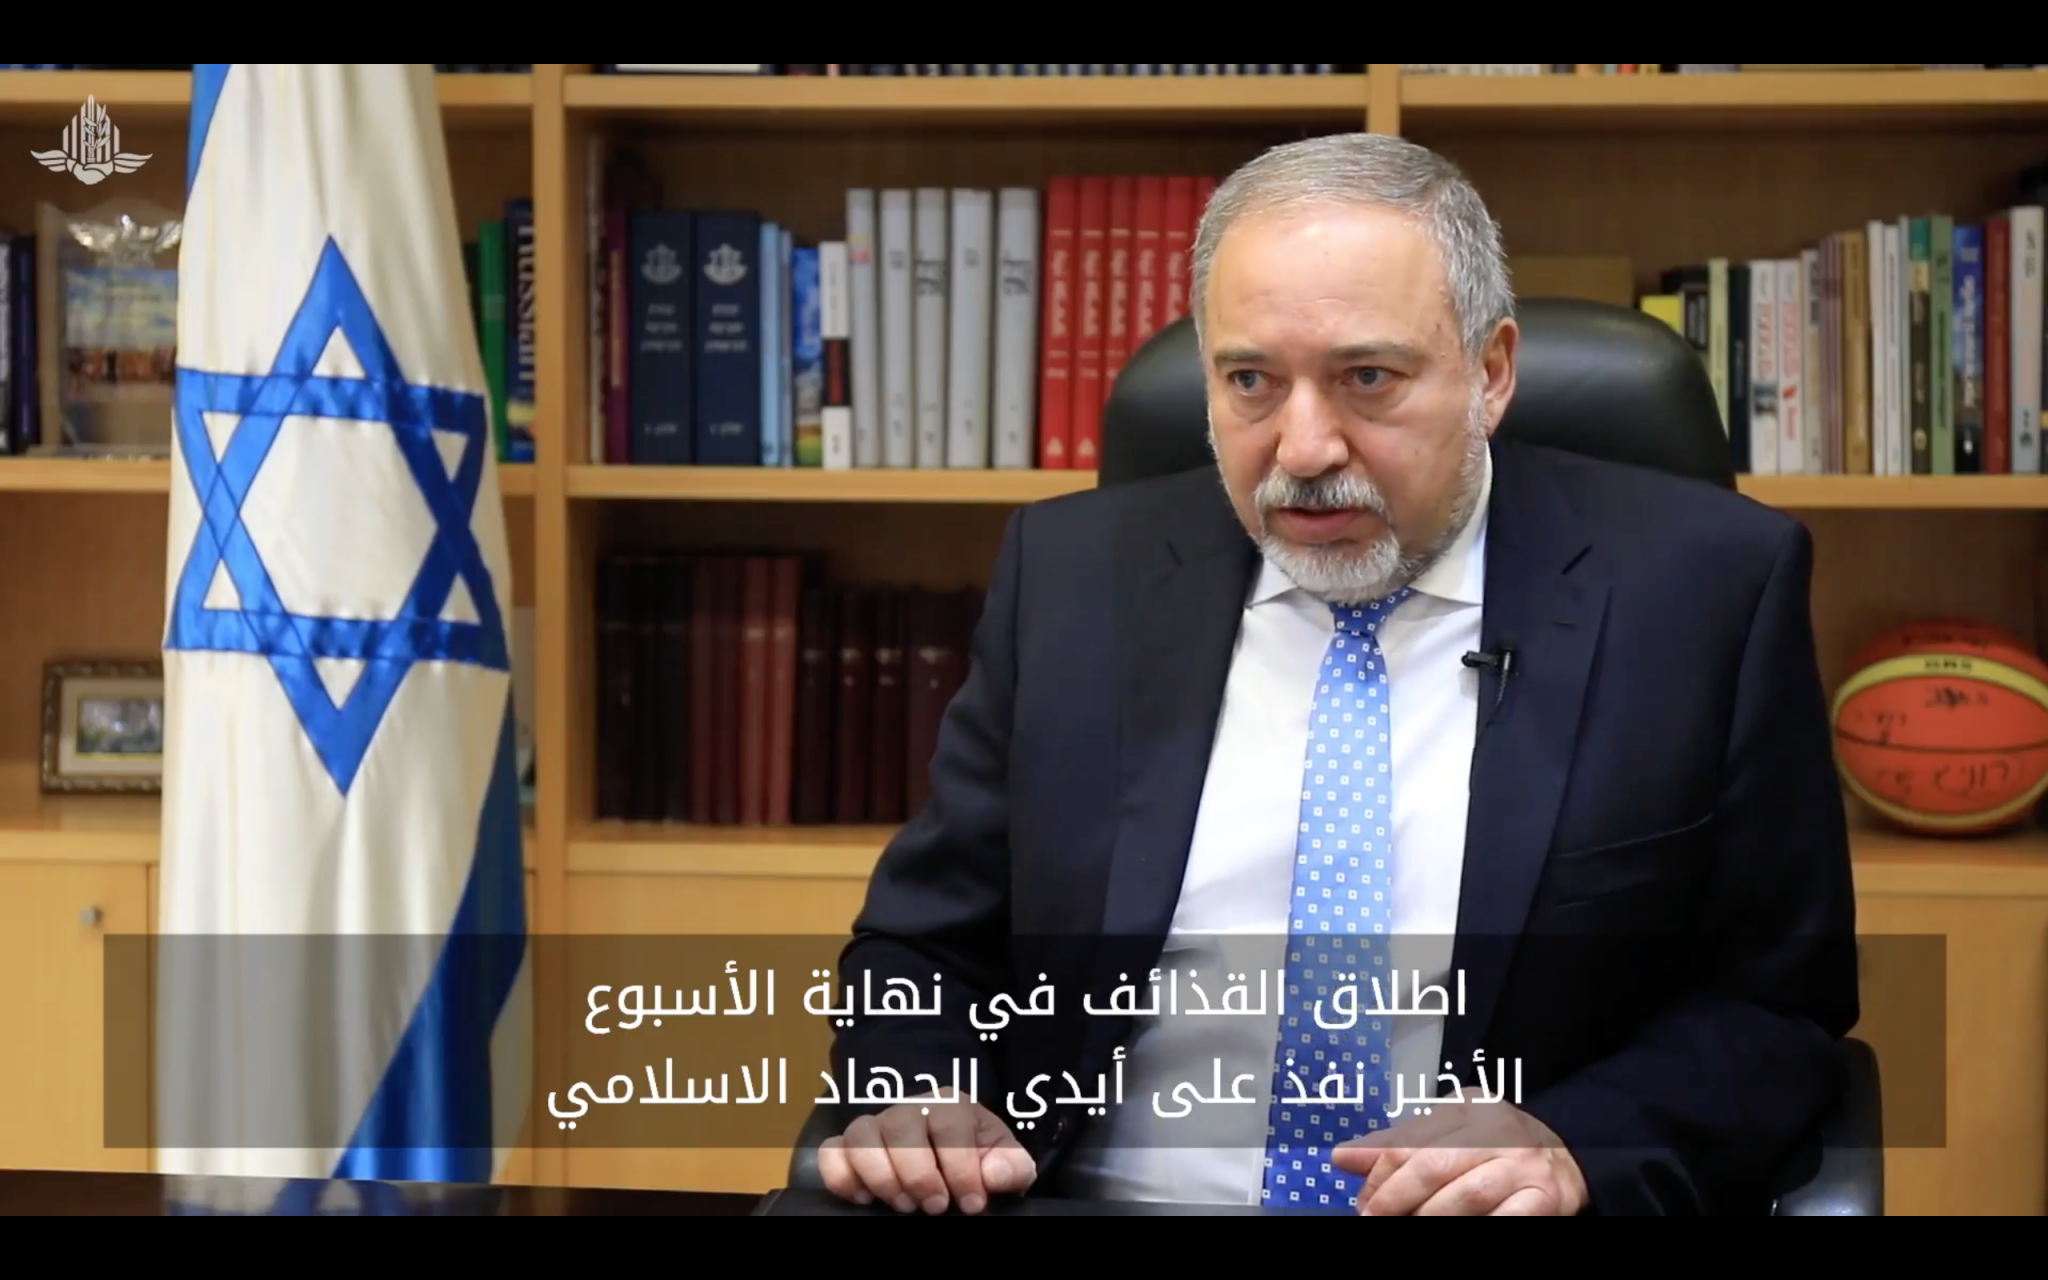 Defense Minister Avigdor Liberman appears in a video for the Arabic Facebook page of Israel's military liaison to the Palestinians